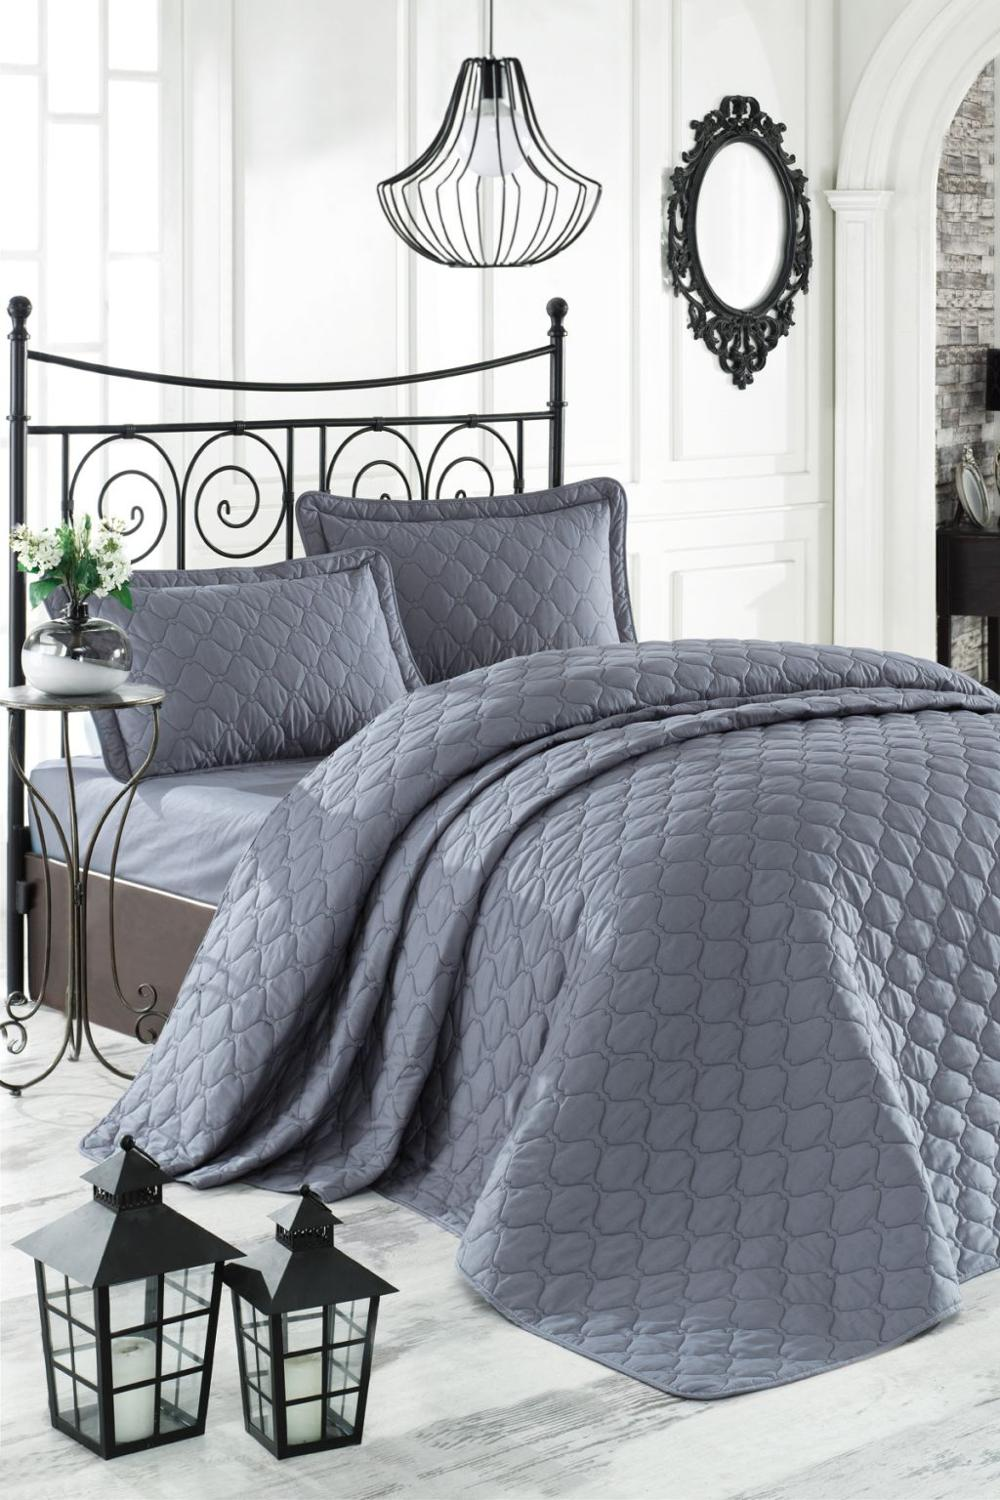 100% Turkish Cotton Bedspread Set, Bedspread And Pillow Case, Quilting, Luxury Anthracite Solid Color